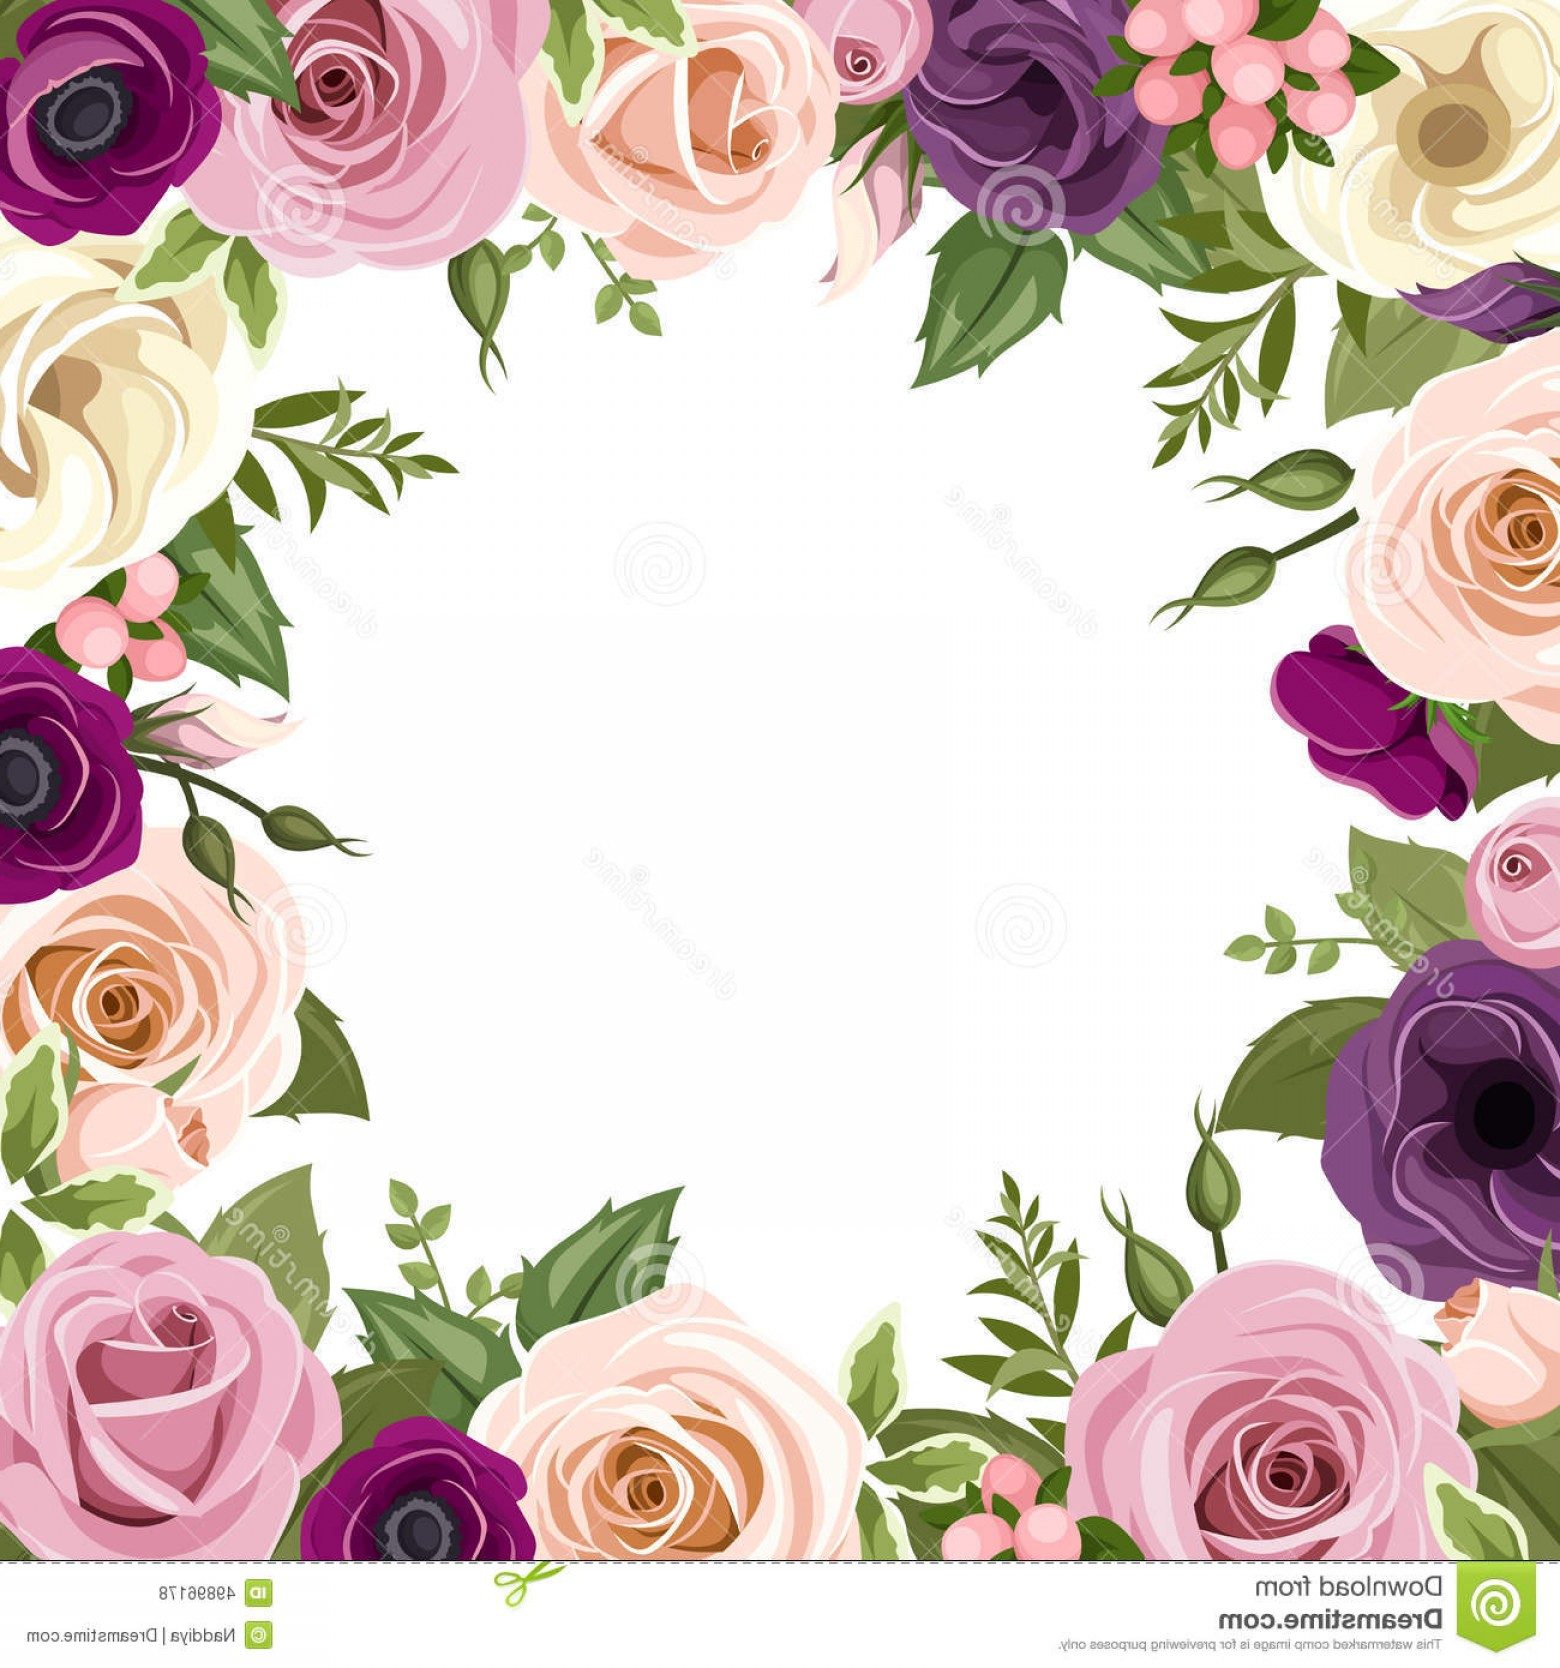 Purple Green And White Vector: Stock Illustration Frame Colorful Roses Lisianthus Flowers Vector Illustration Pink Purple White Orange Anemone Green Leaves Image